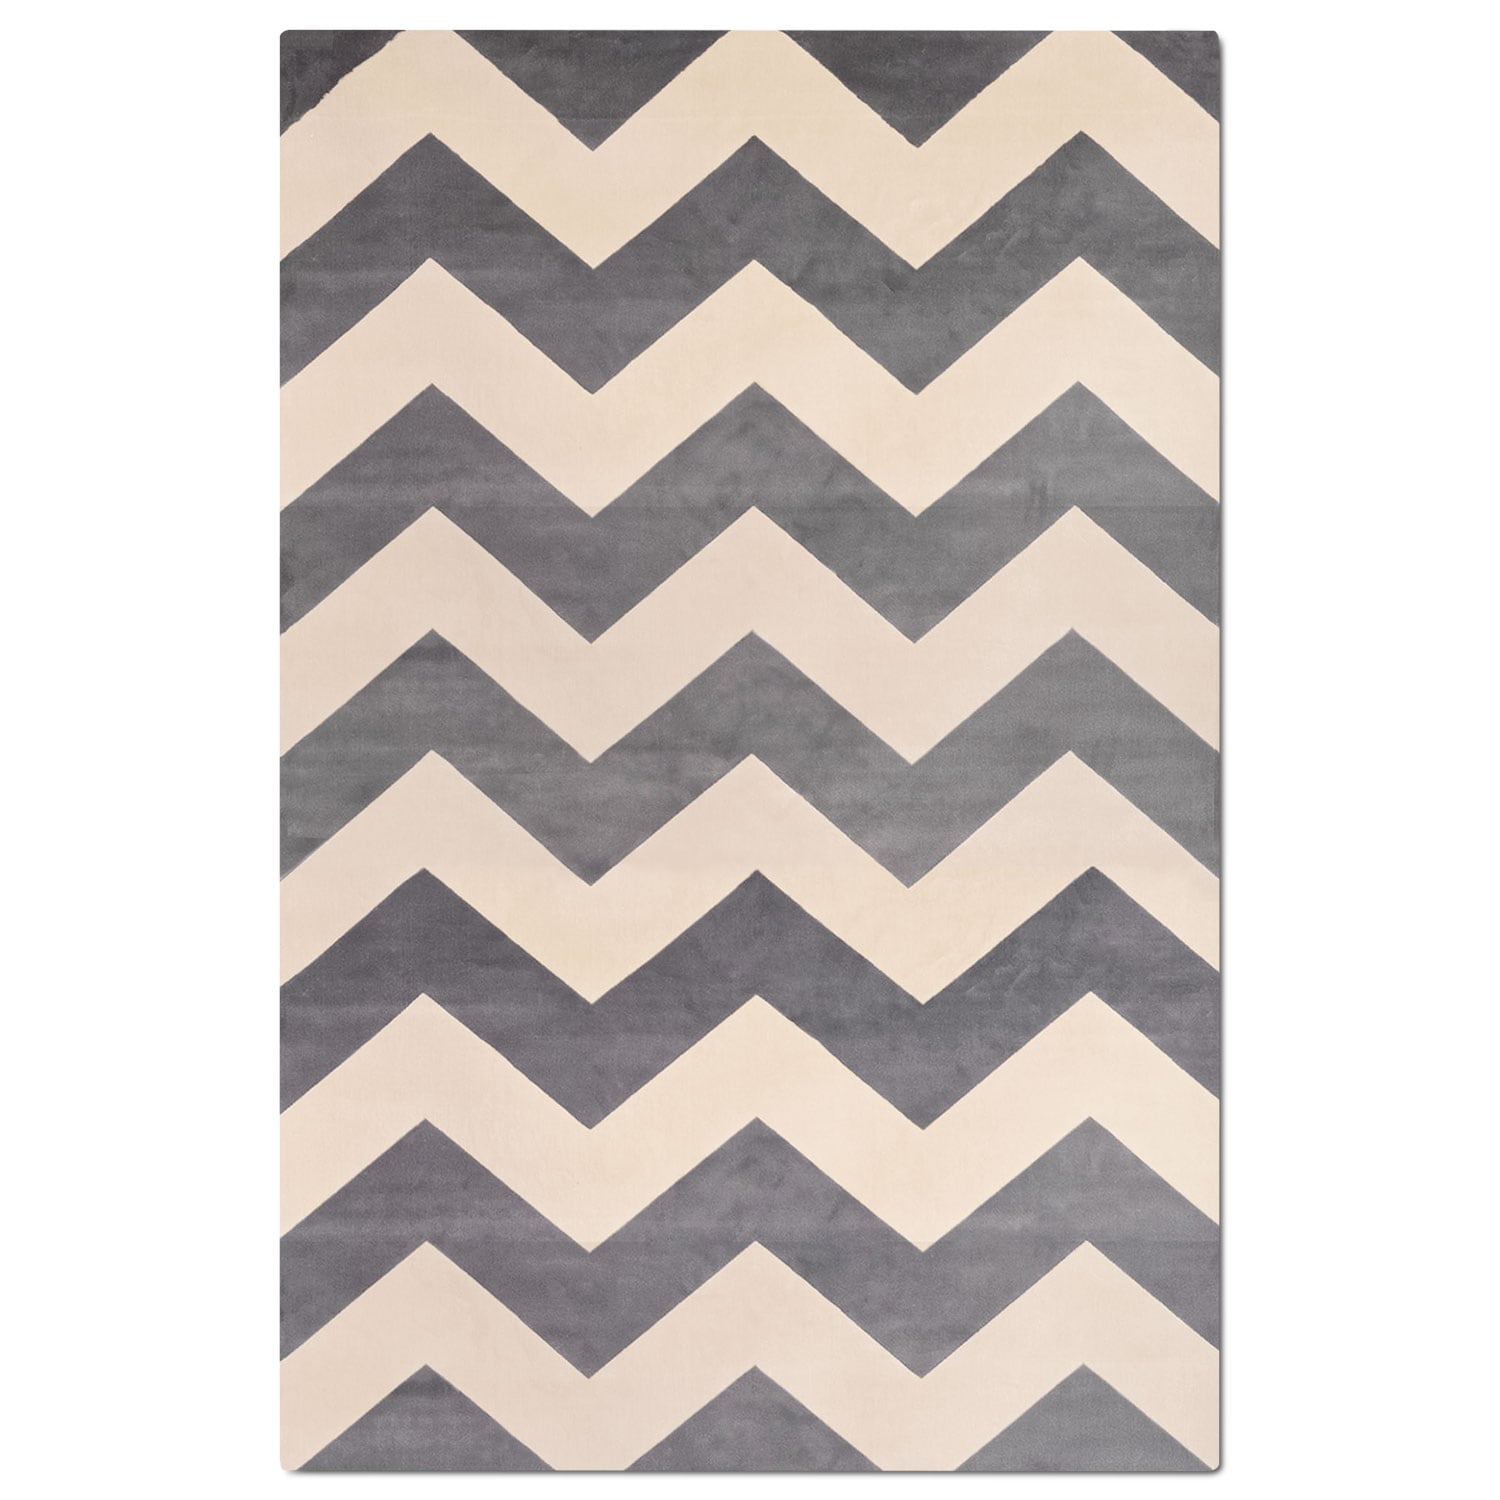 Sonoma 5' x 8' Area Rug - Light Blue and Ivory